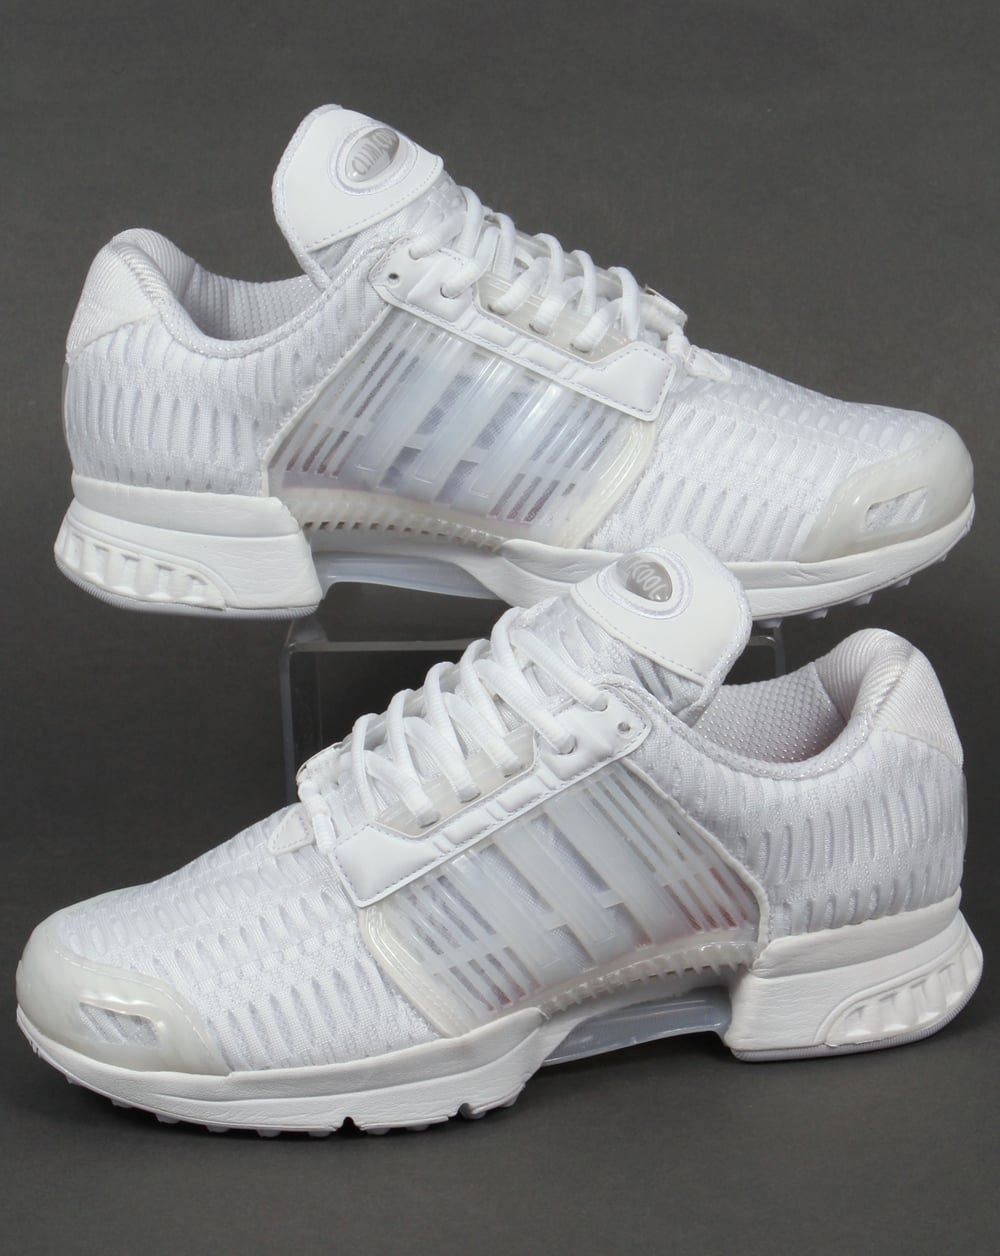 adidas Trainers Adidas Clima Cool 1 Trainers Triple White 8c00b26ca9